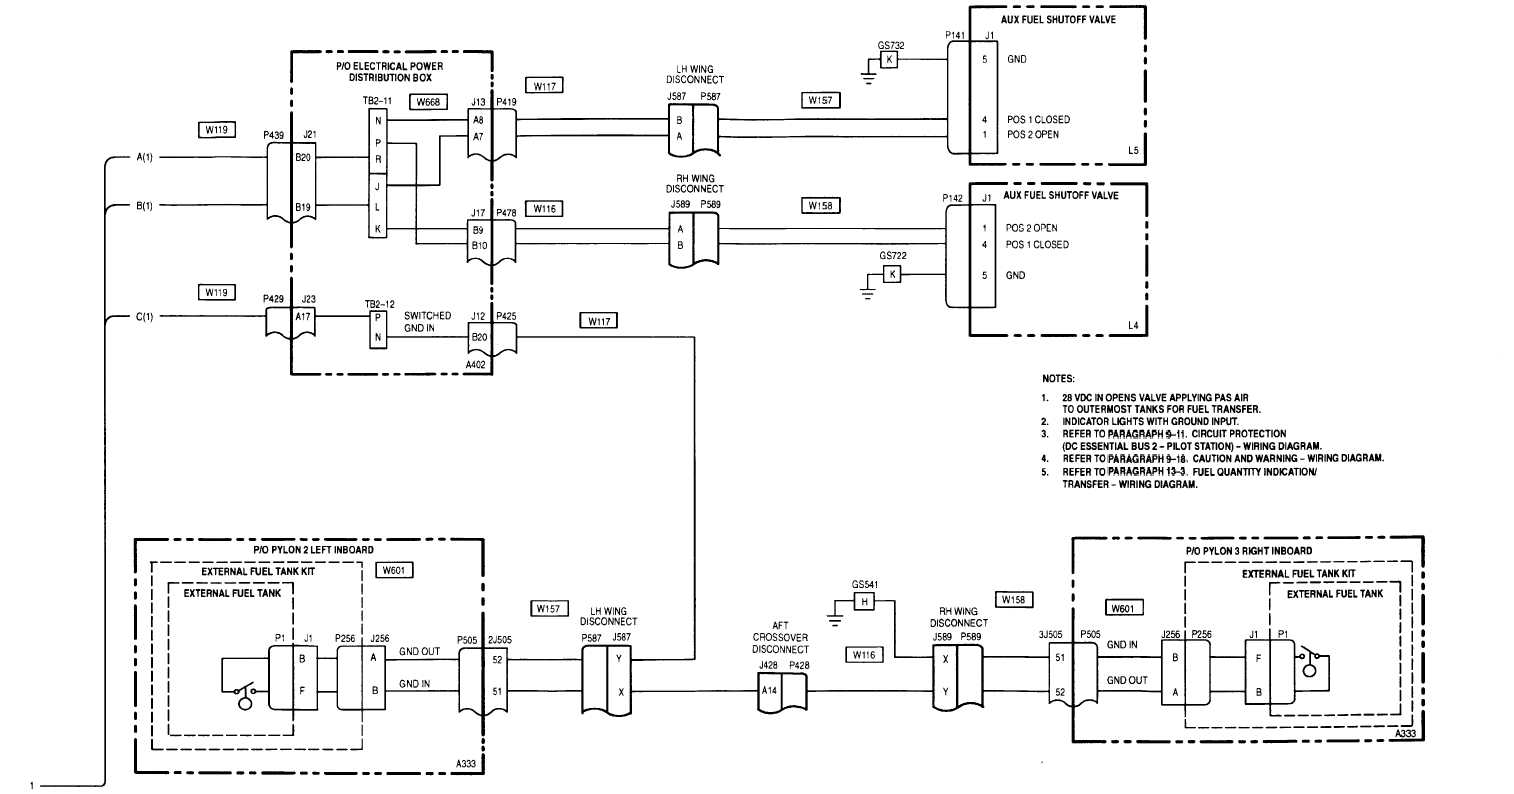 13 1 Auxiliary Fuel Wiring Diagram Cont Warning Indicator Light Paragraph 9 18 3 Tm 1520 238 T 10 Sheet 2 Of M50 231 2a